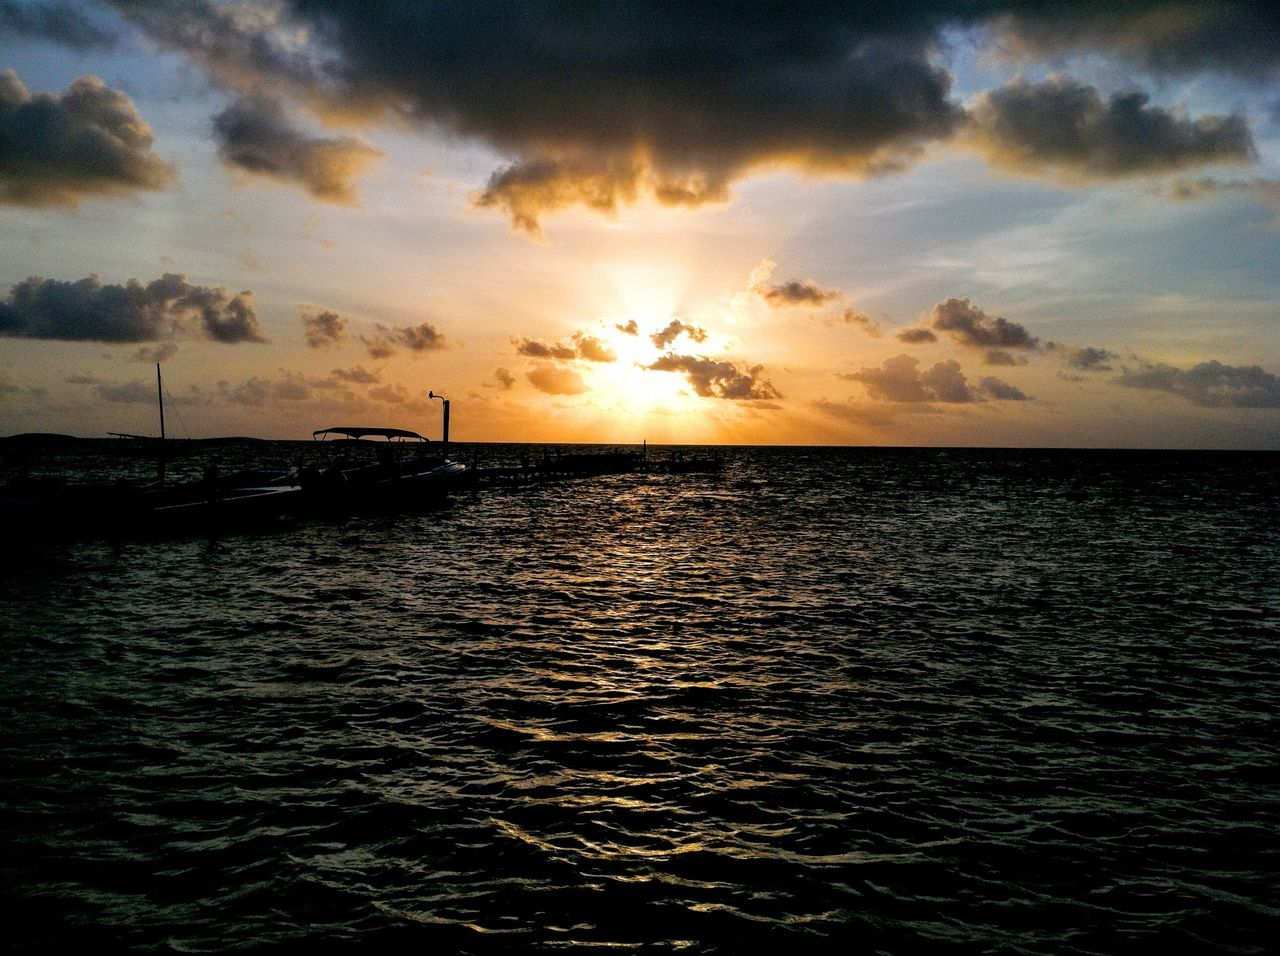 Amazing Sunrise #belize #caribbeansea #Sunrise #sunset #sun #clouds #skylovers #sky #nature #beautifulinnature #naturalbeauty #photography #landscape Beauty In Nature Cloud - Sky Horizon Over Water Idyllic Majestic Nautical Vessel Ocean Rippled Seascape Sun Tranquil Scene Waterfront